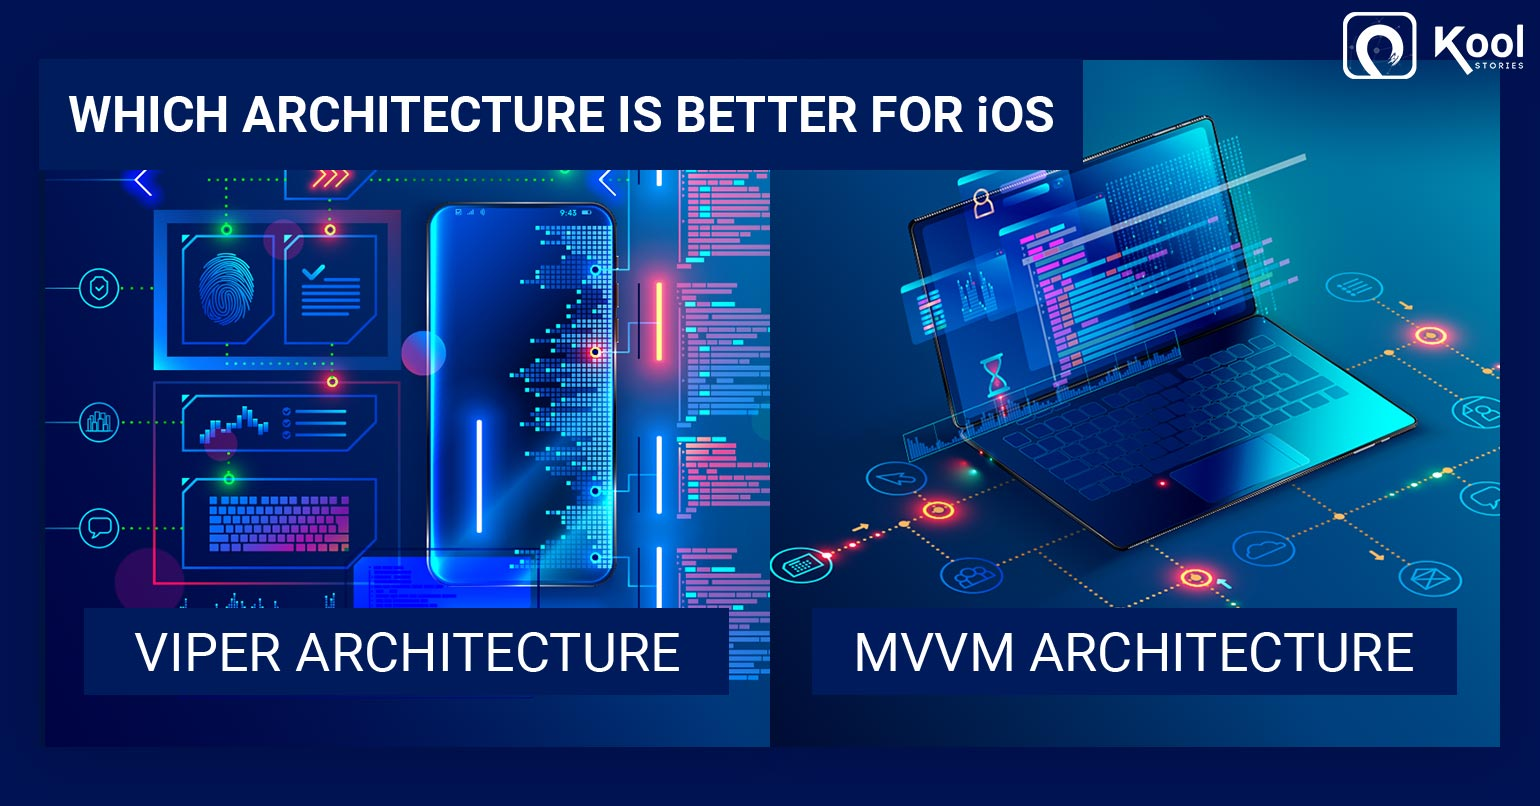 VIPER vs MVVM: Which Architecture is Better for iOS